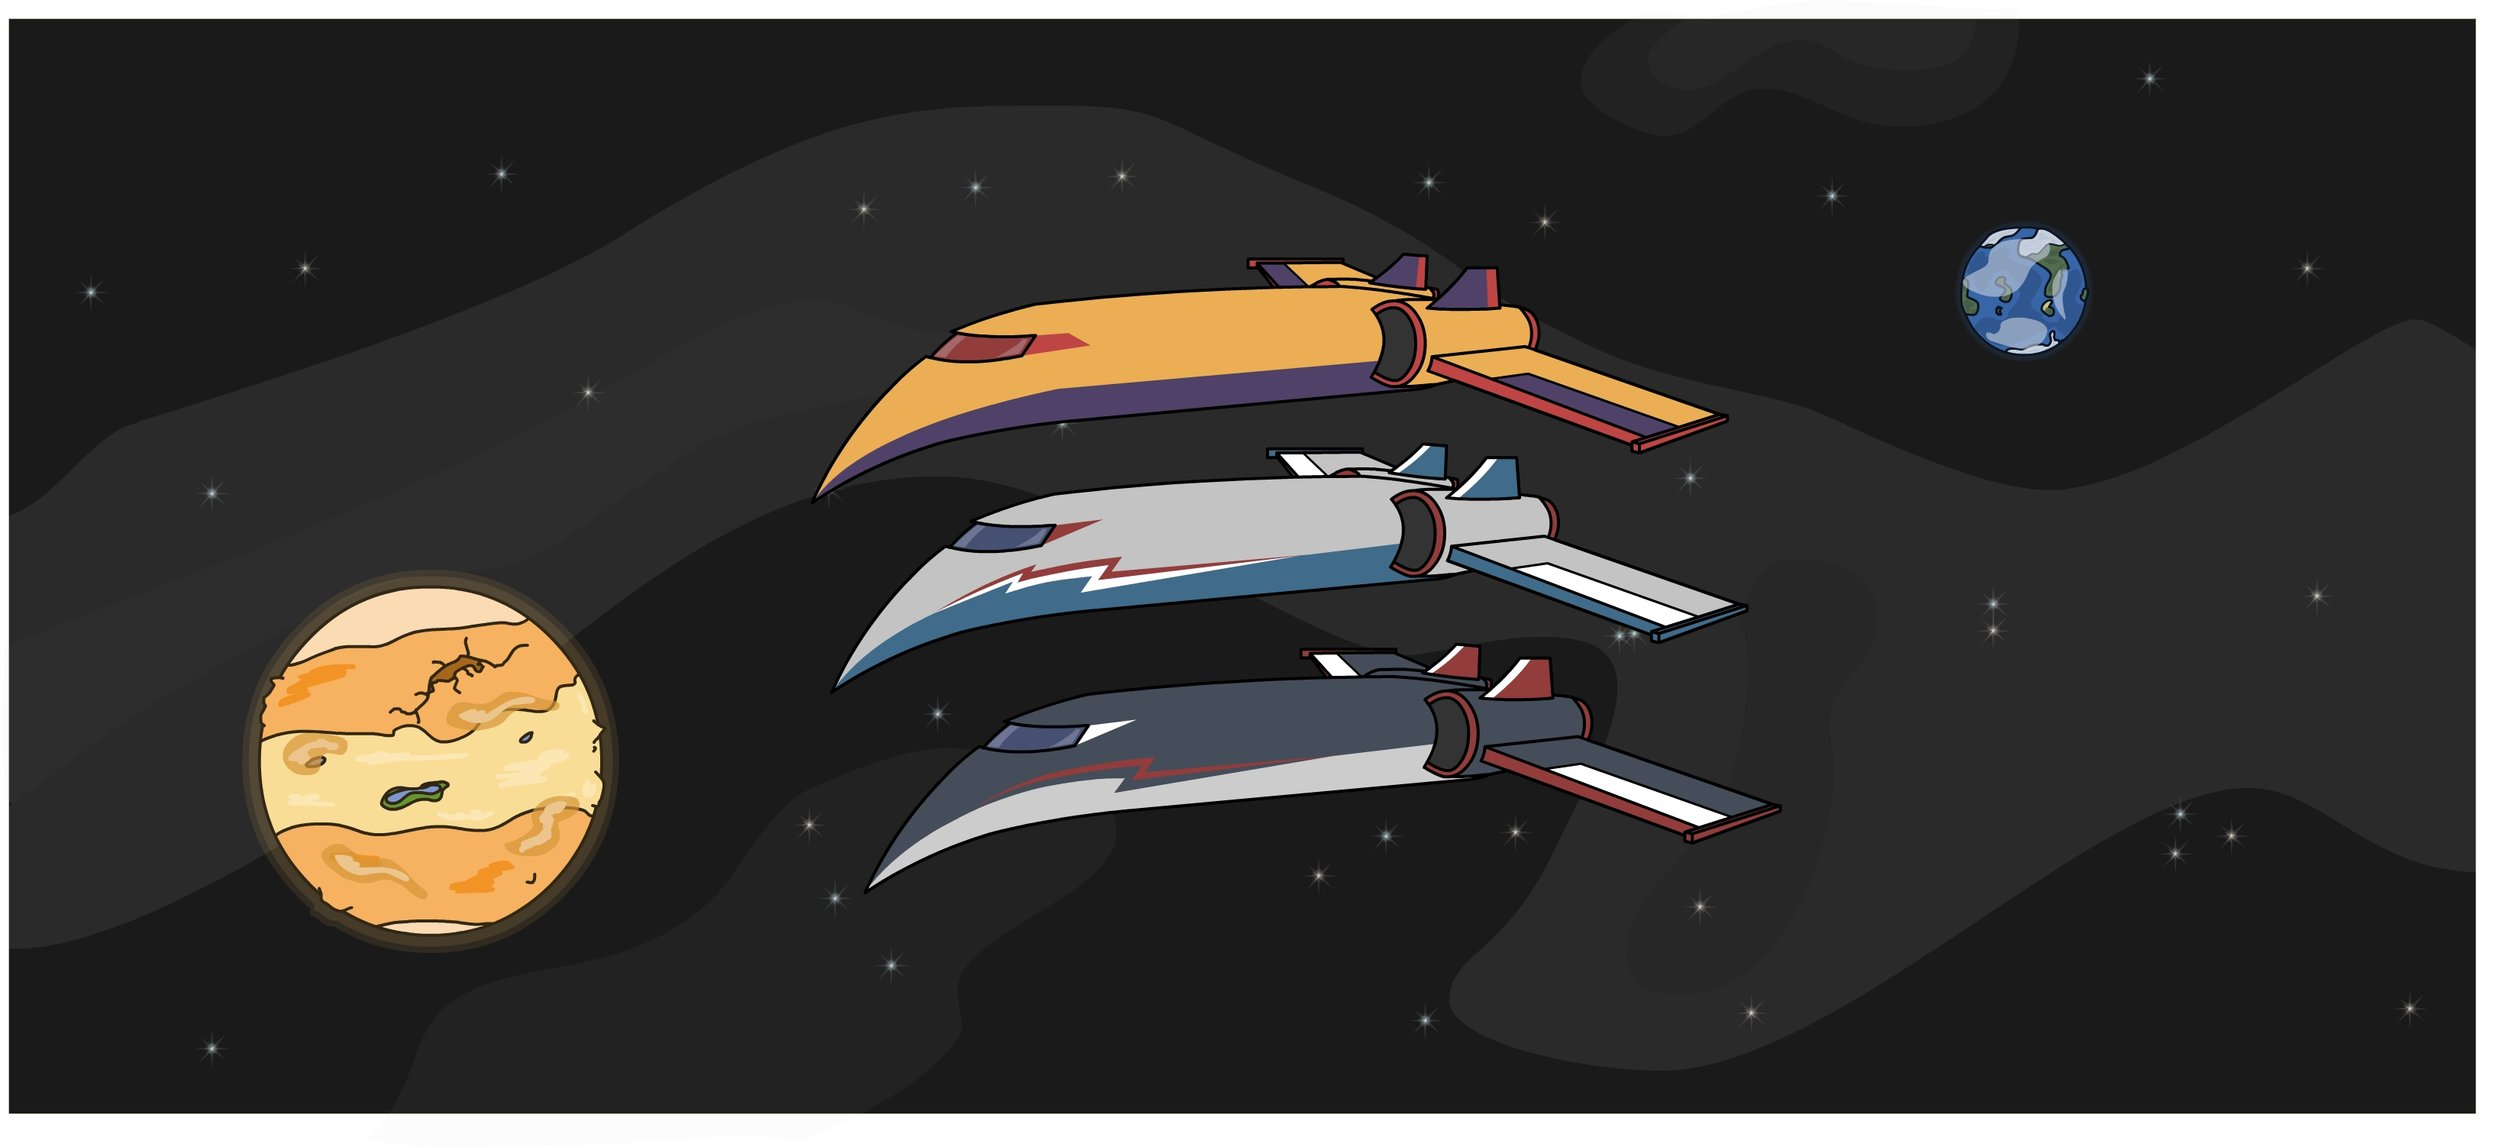 Starship color tests, on a space background